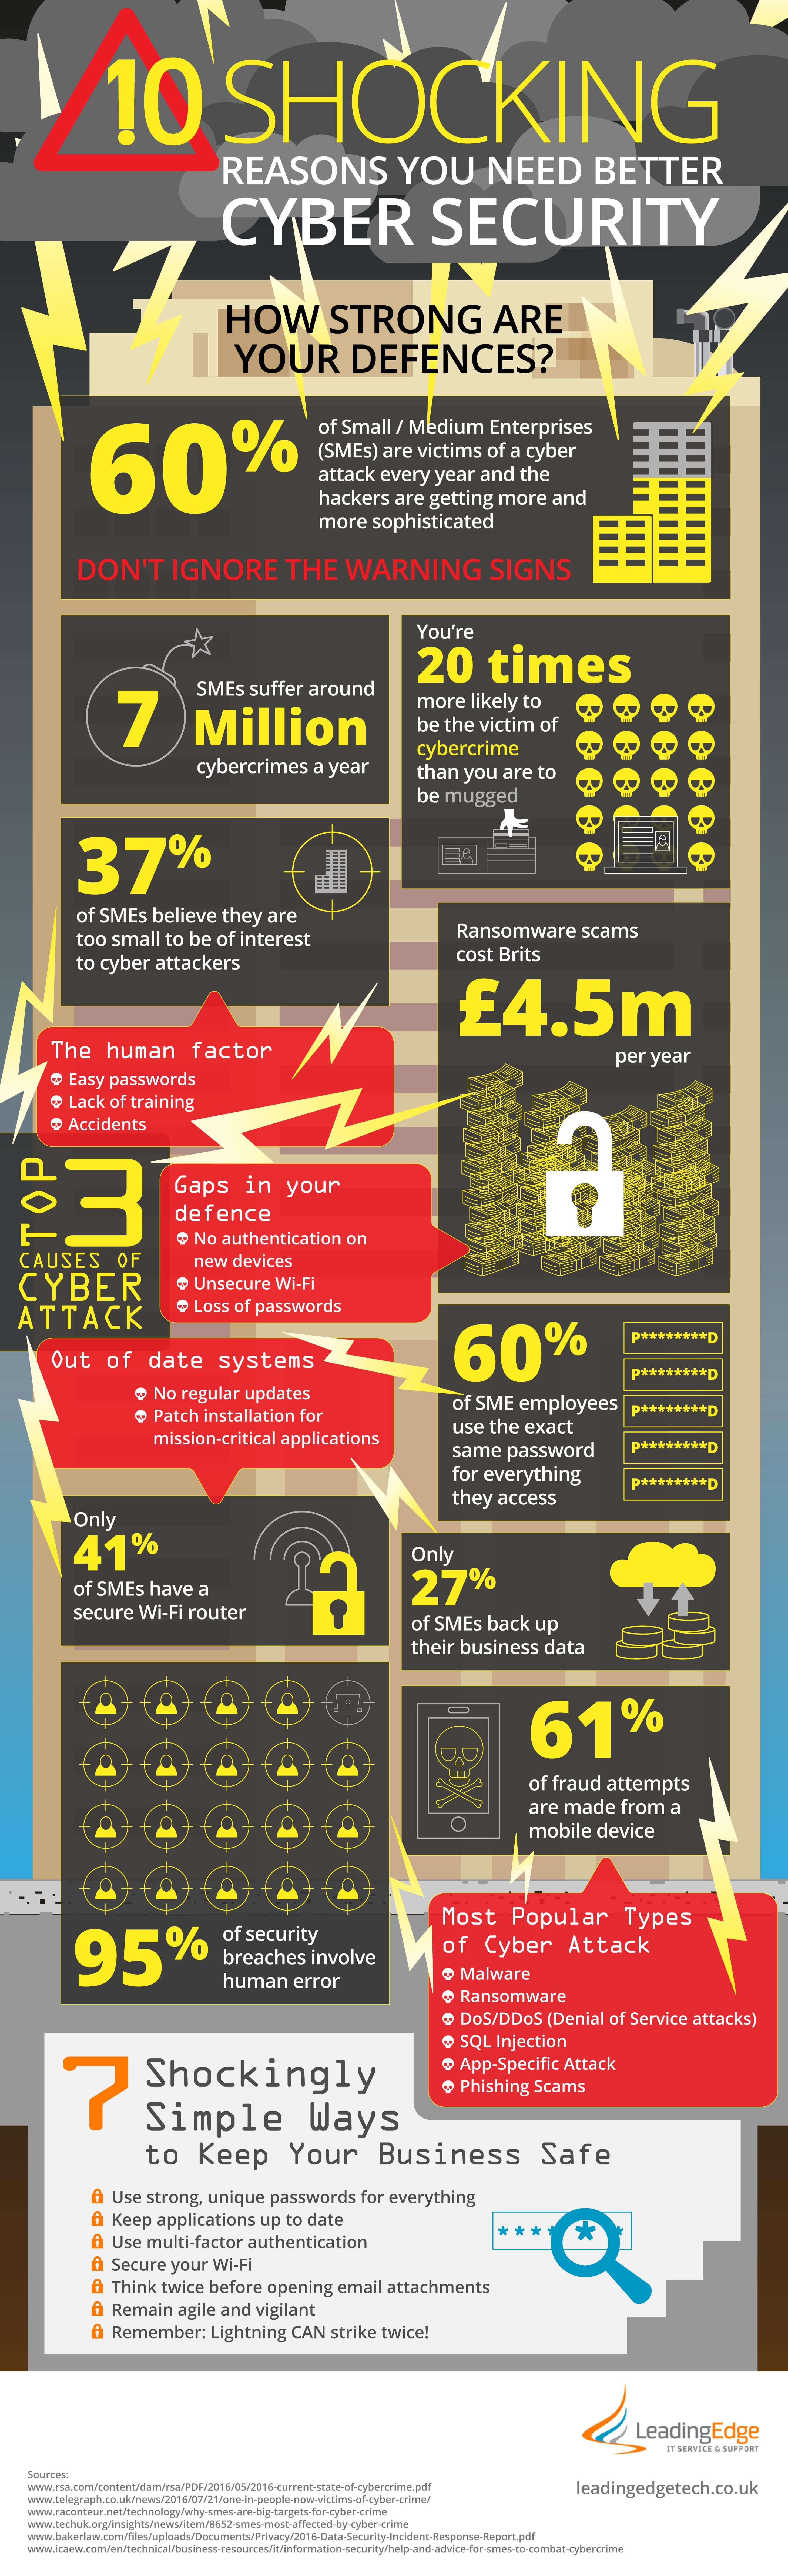 The Importance Of Cyber Security And How You Can Achieve It - Infographic